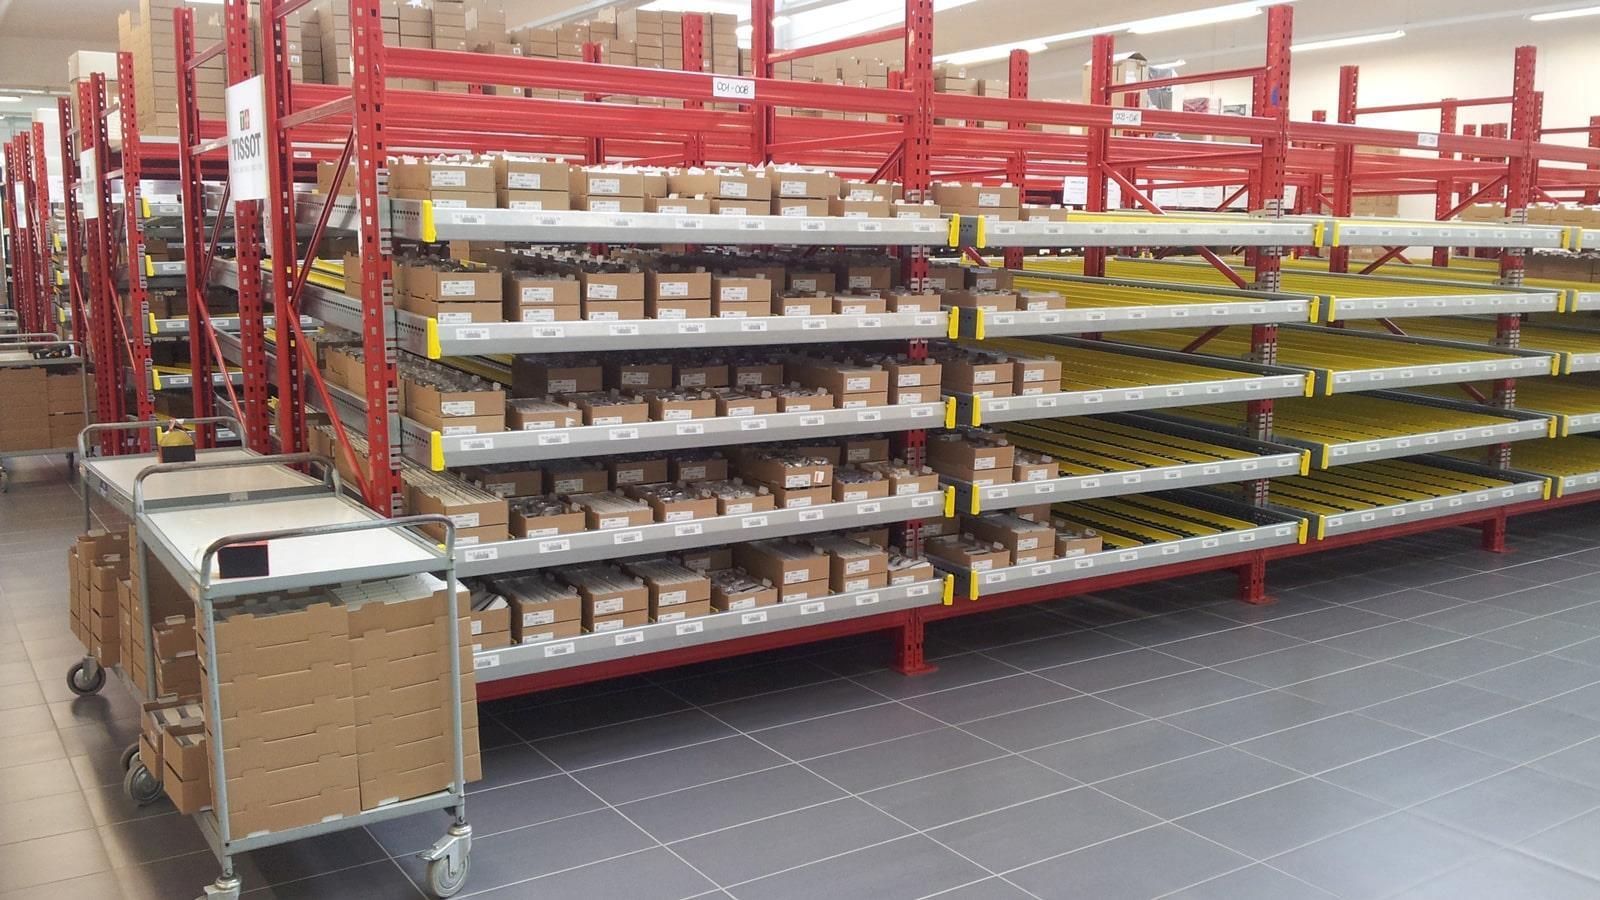 Cardboard boxes with Tissot watches on shelves in the warehouse